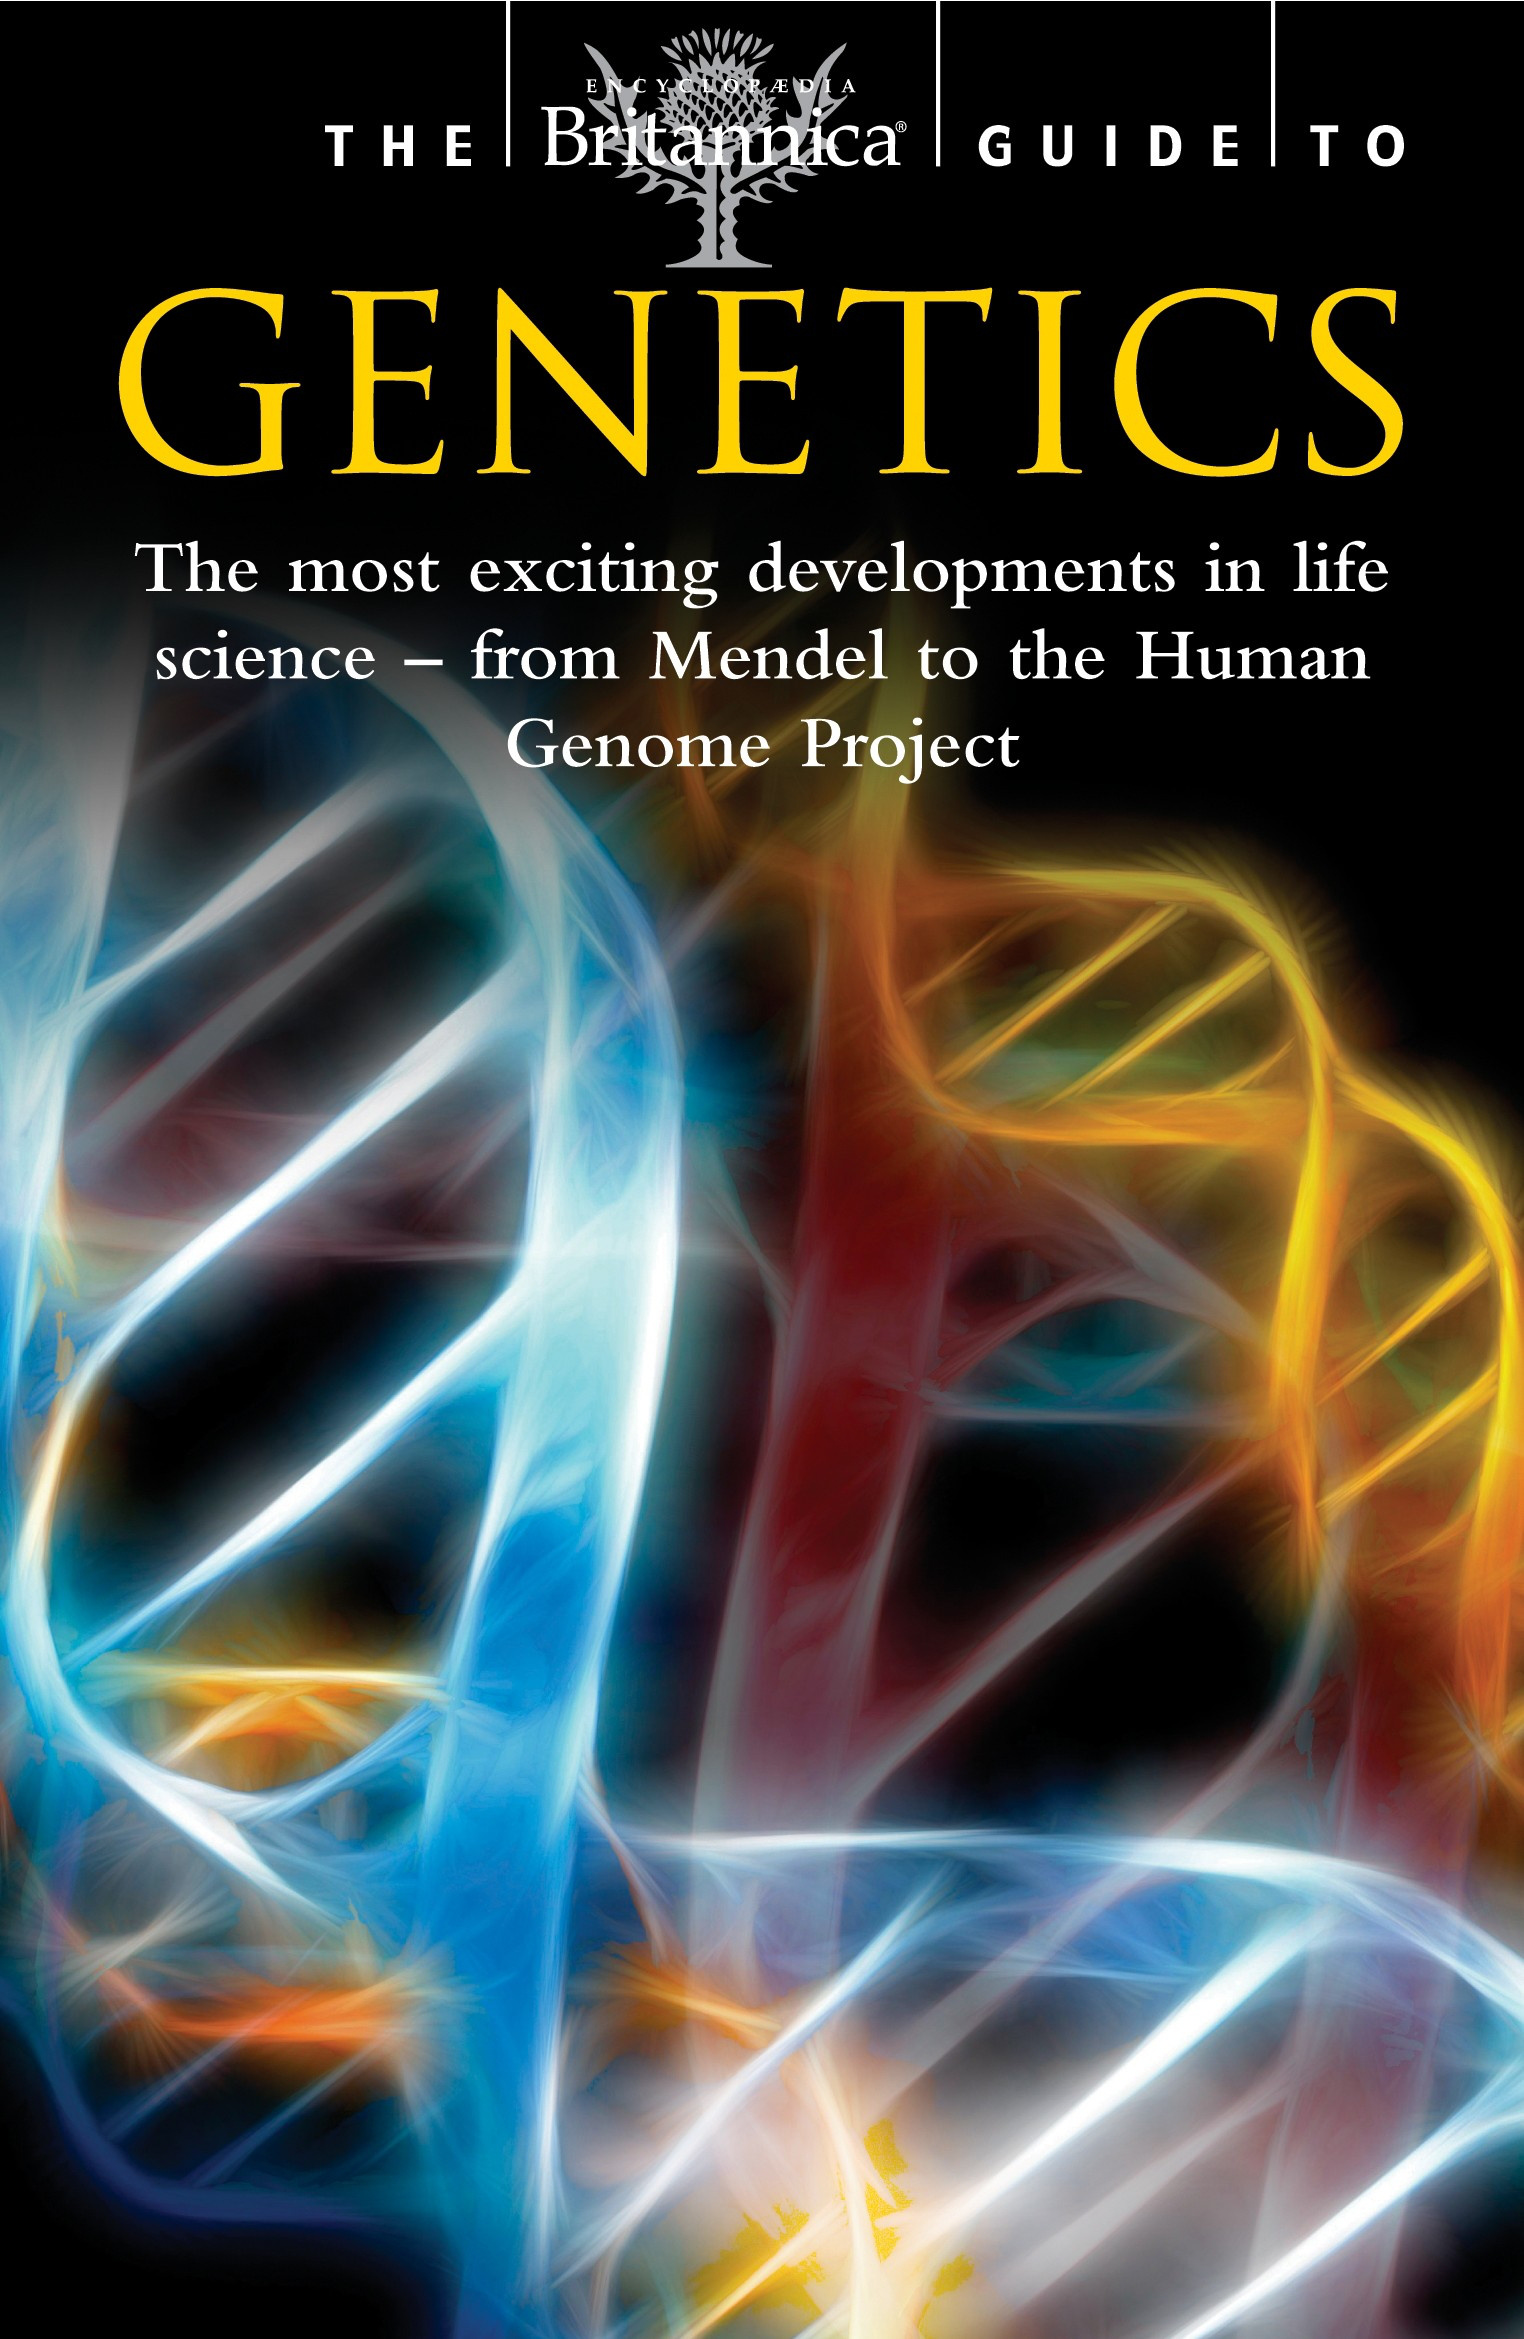 The Britannica Guide To Genetics The Most Exciting Development In